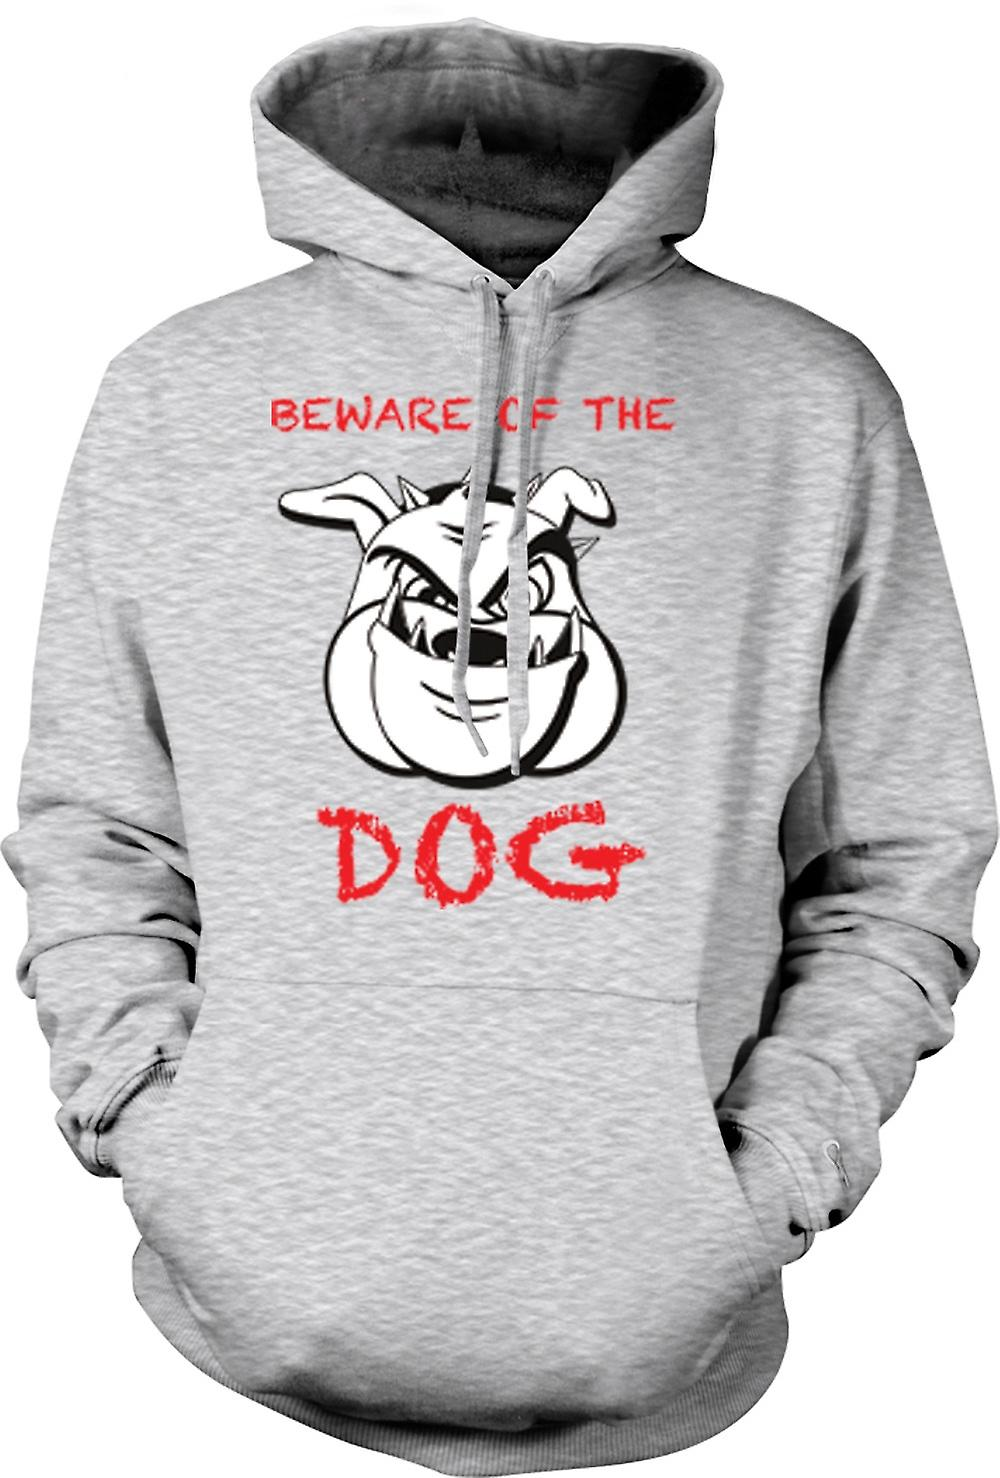 Mens Hoodie - Beware Of The Dog - Mean Boxer Dog